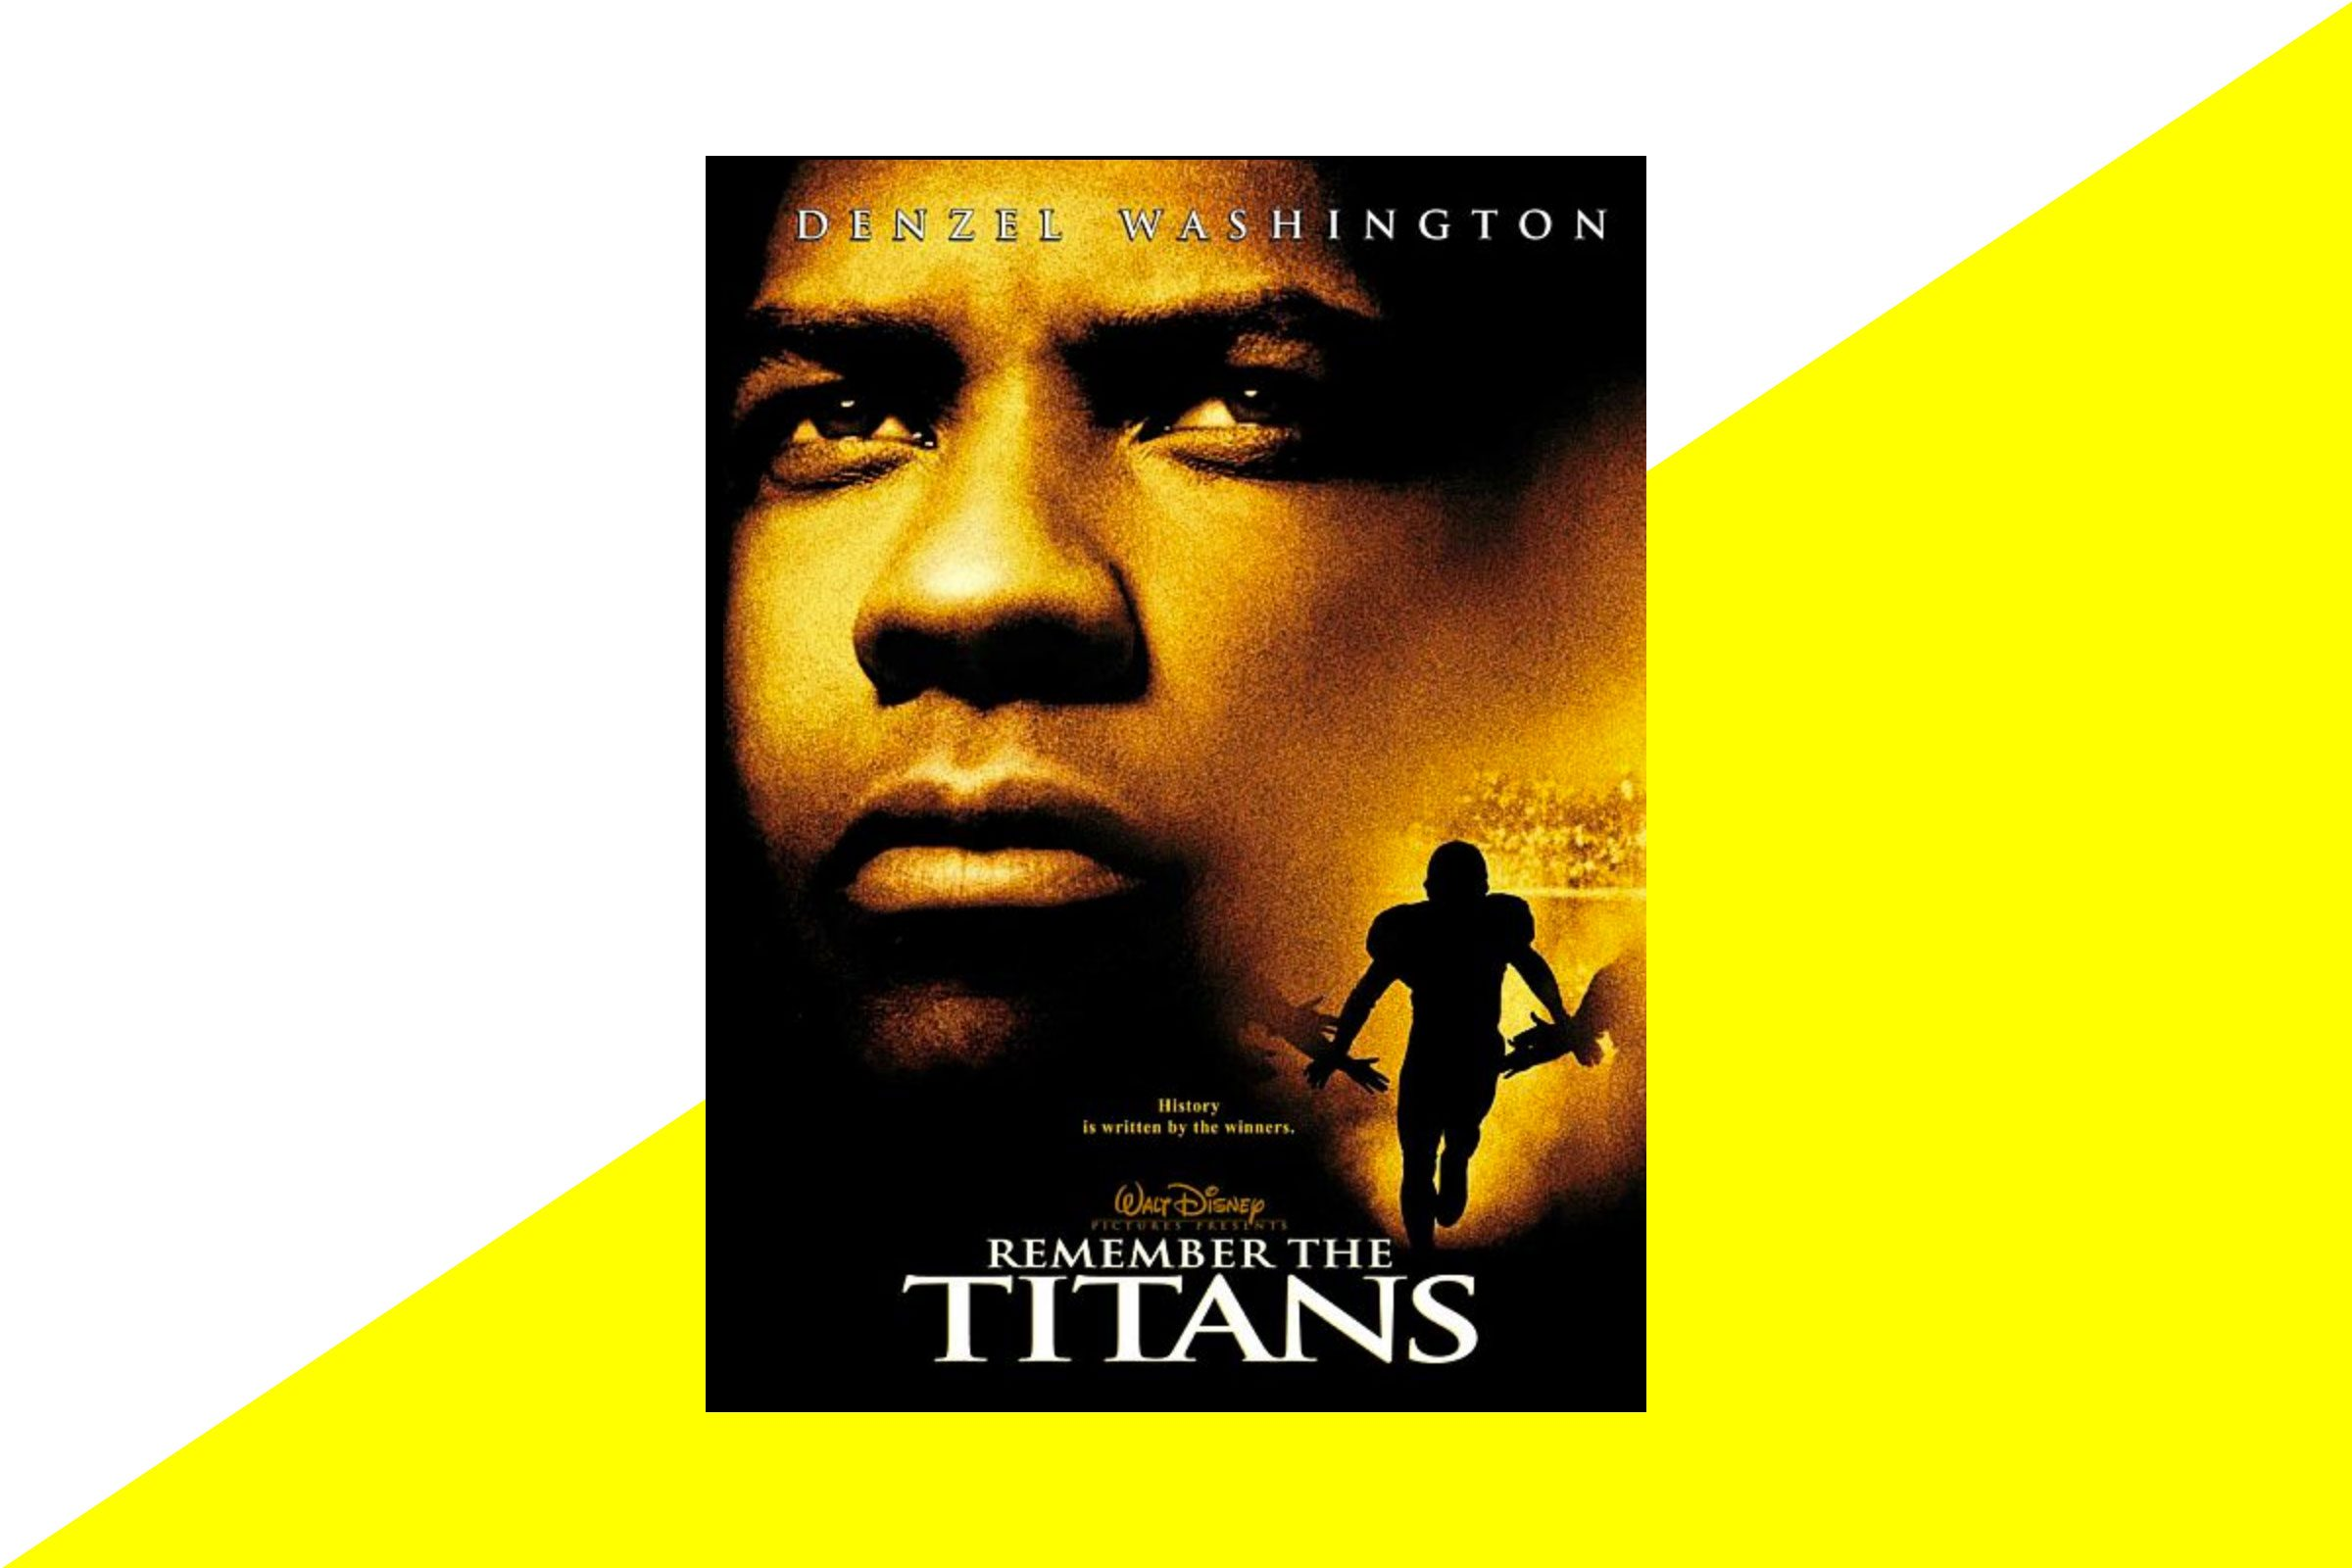 belonging essay on remember the titans Remember the titans belonging essay usf tampa mfa creative writing 6 september 2018 6 september 2018 allgemein twittern reading sight unseen and writing short essay on subject set in a summer camp and one girl is blind when one of.